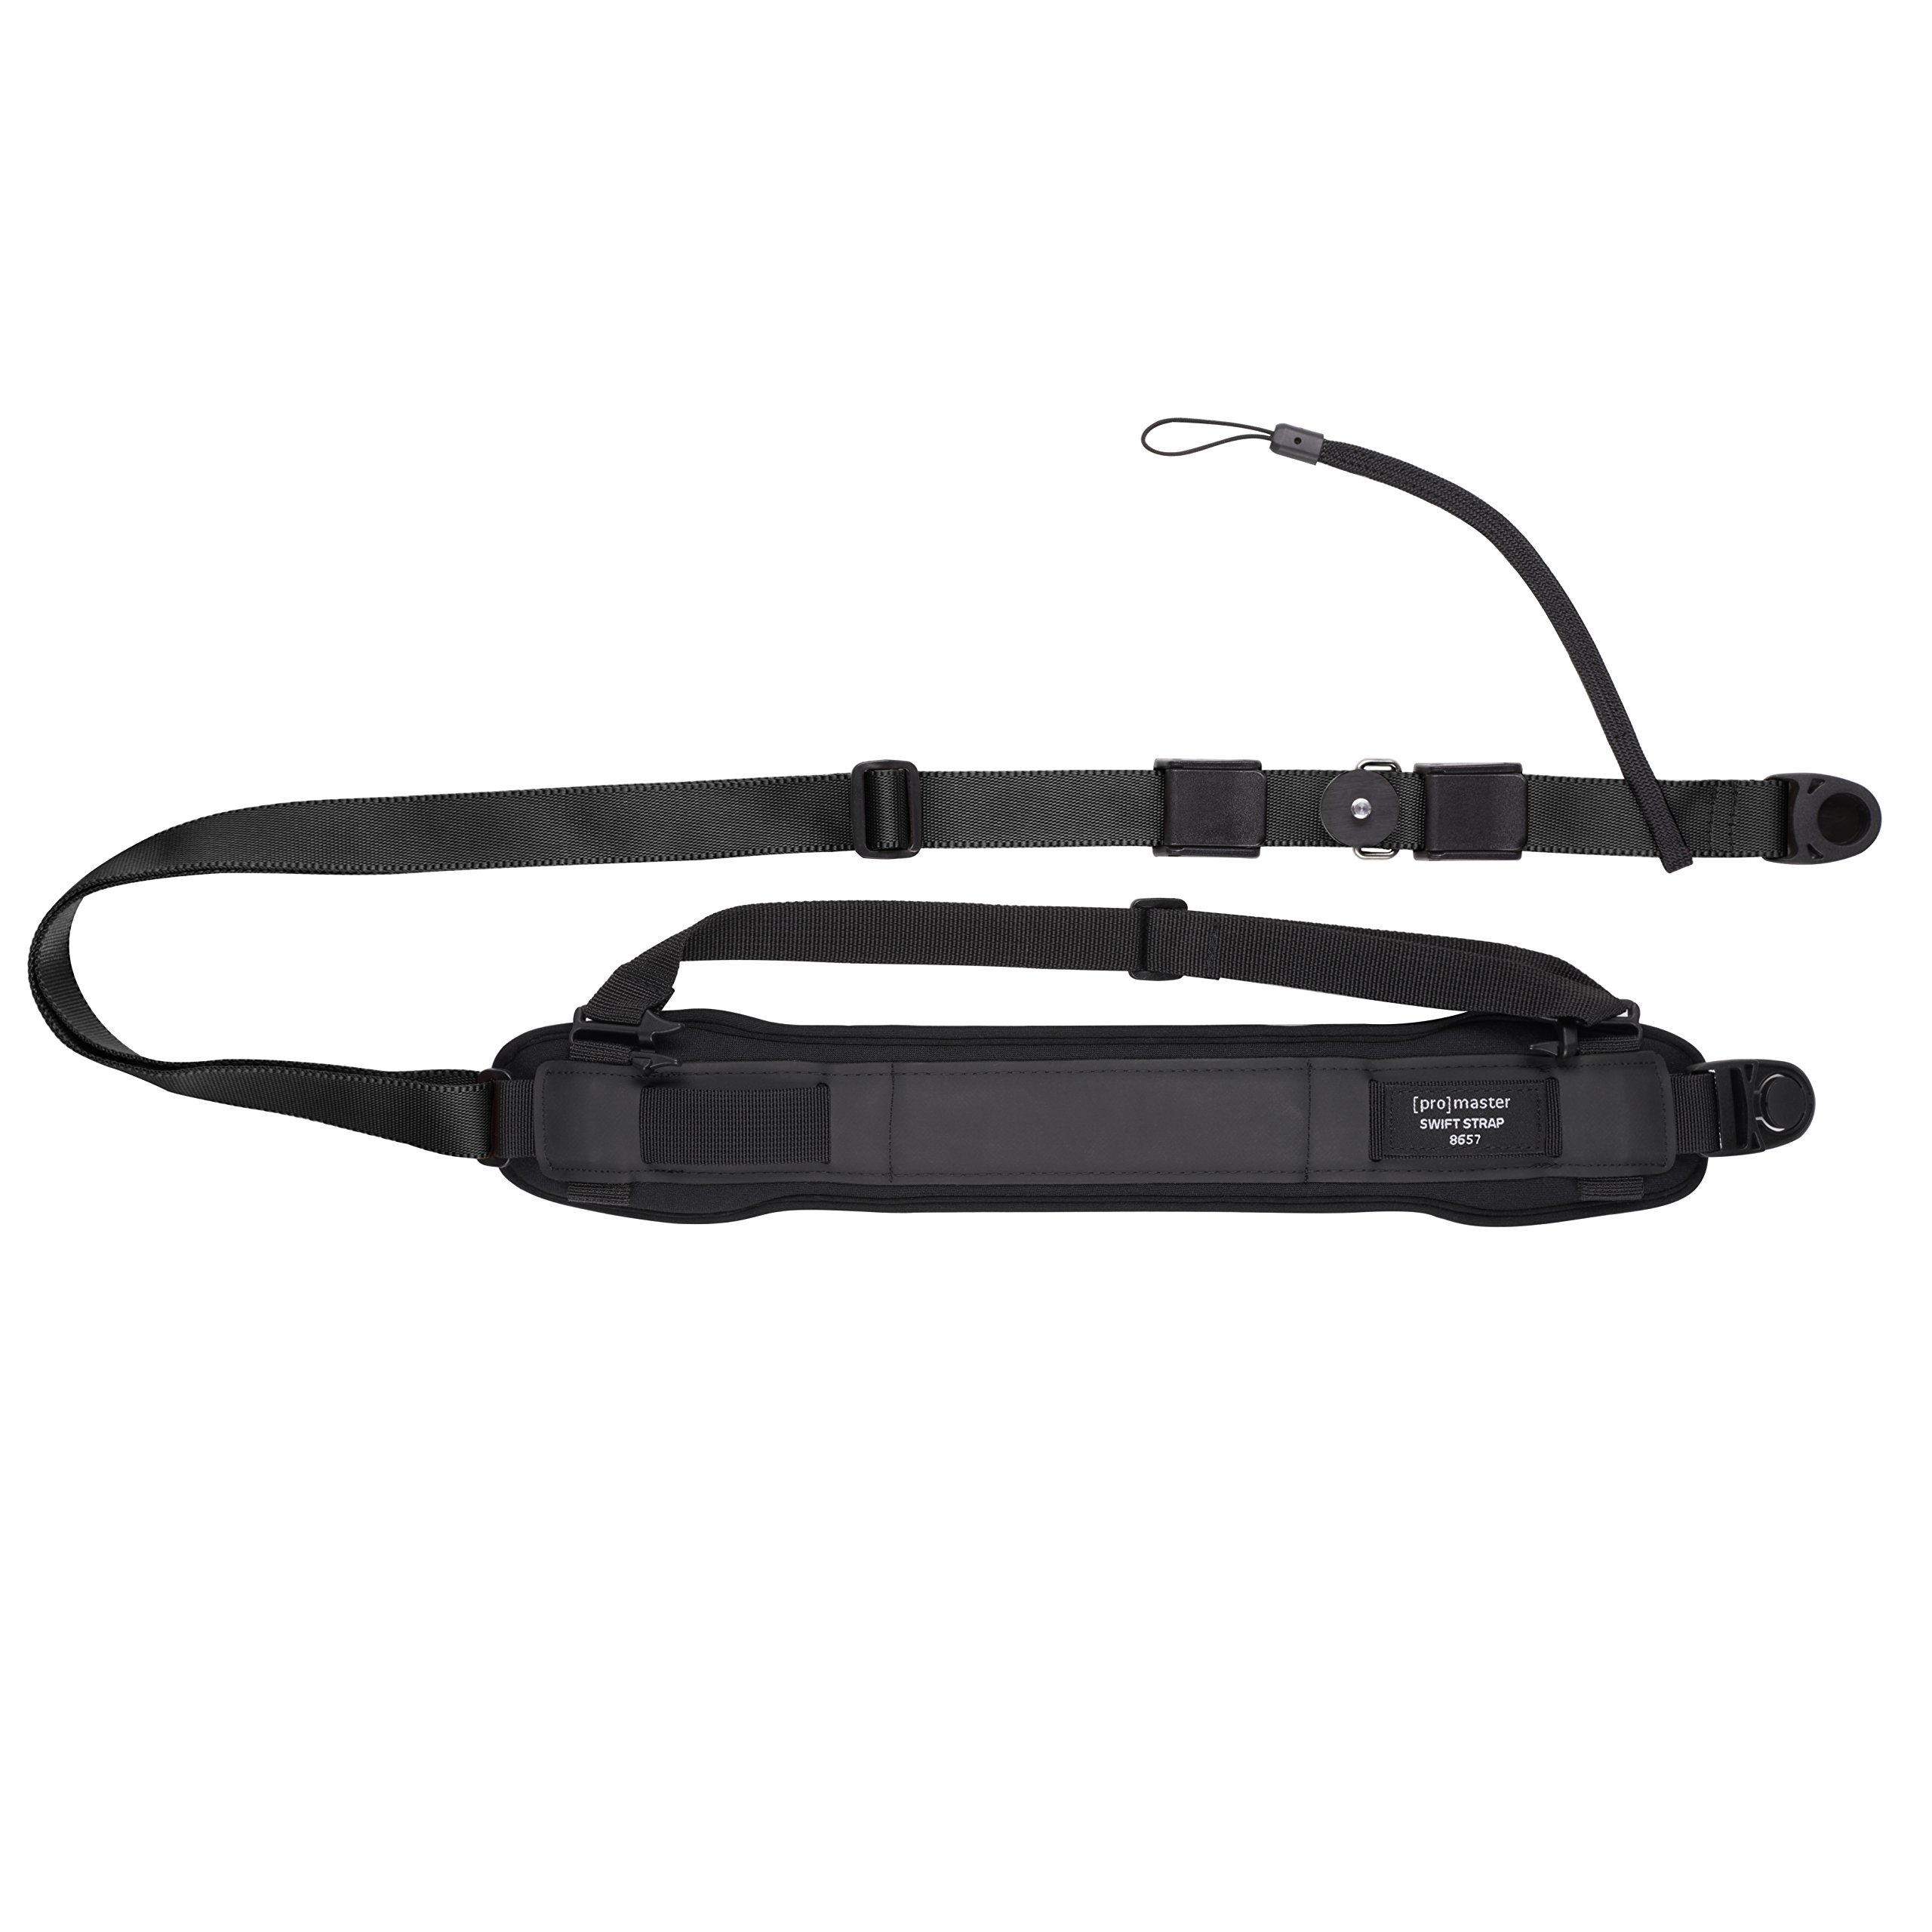 Promaster Swift Strap 2 HD for Professional DSLR - Black by ProMaster